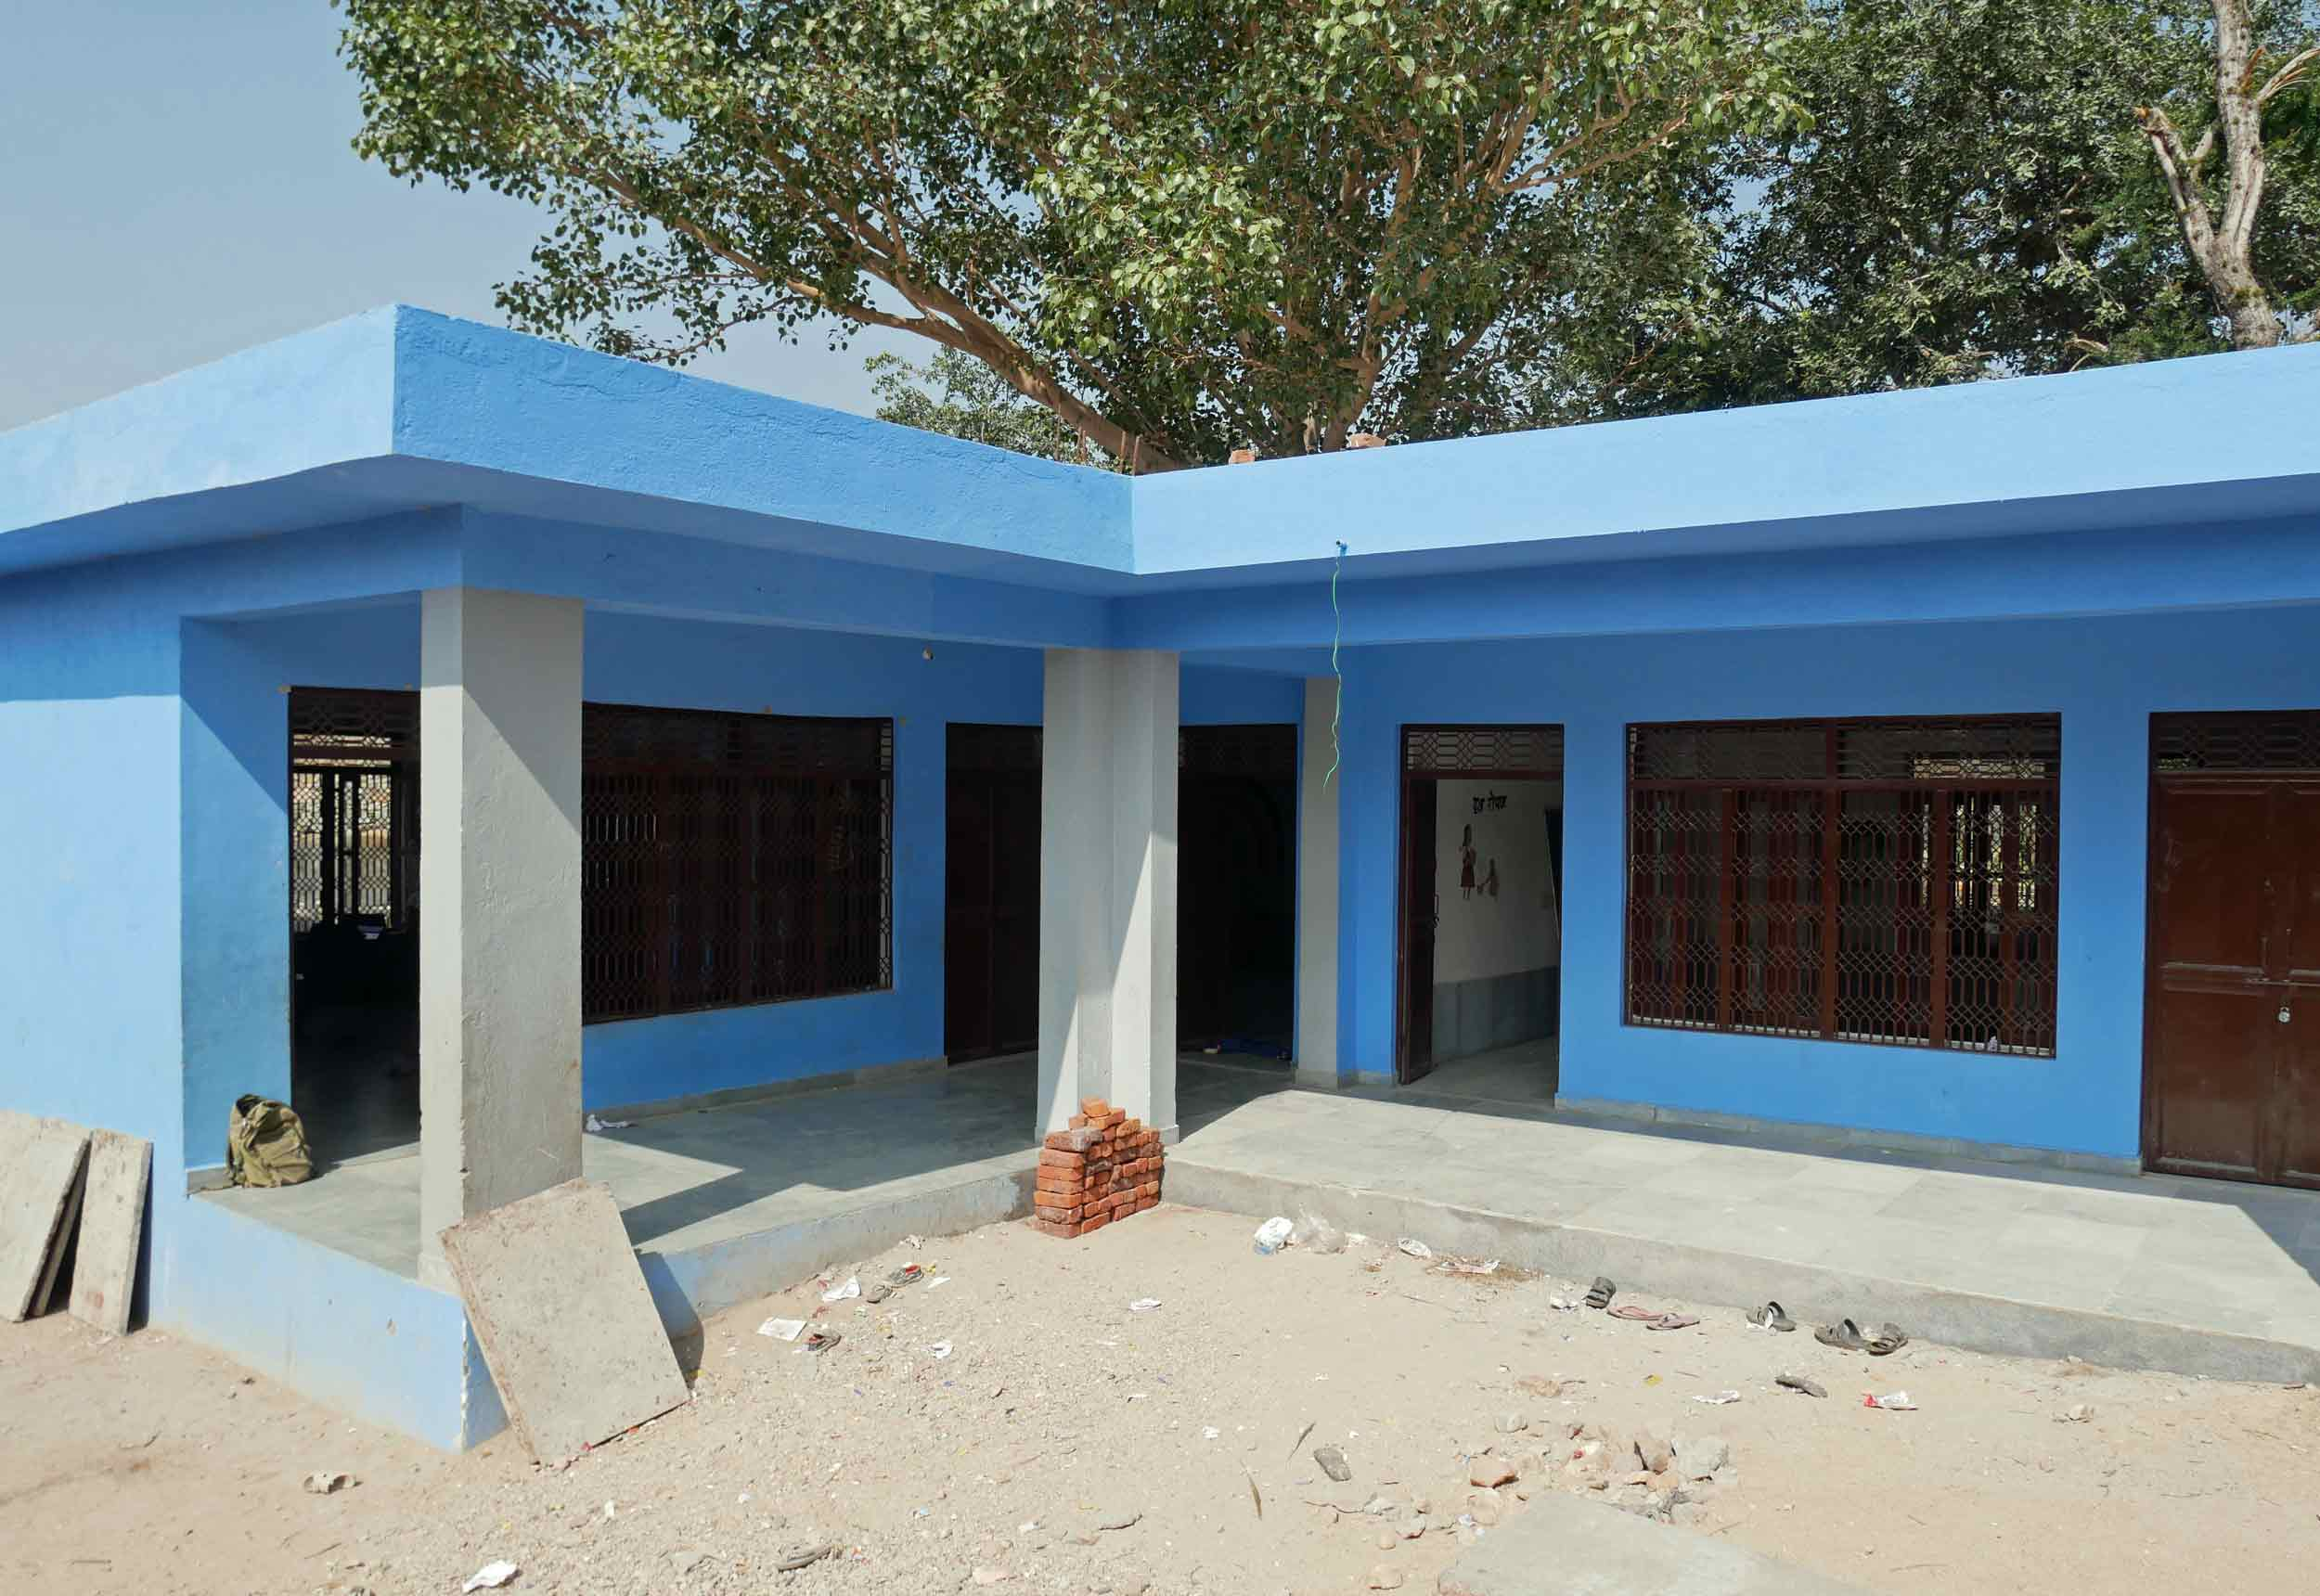 Part of the new school being built by WE in Antri.